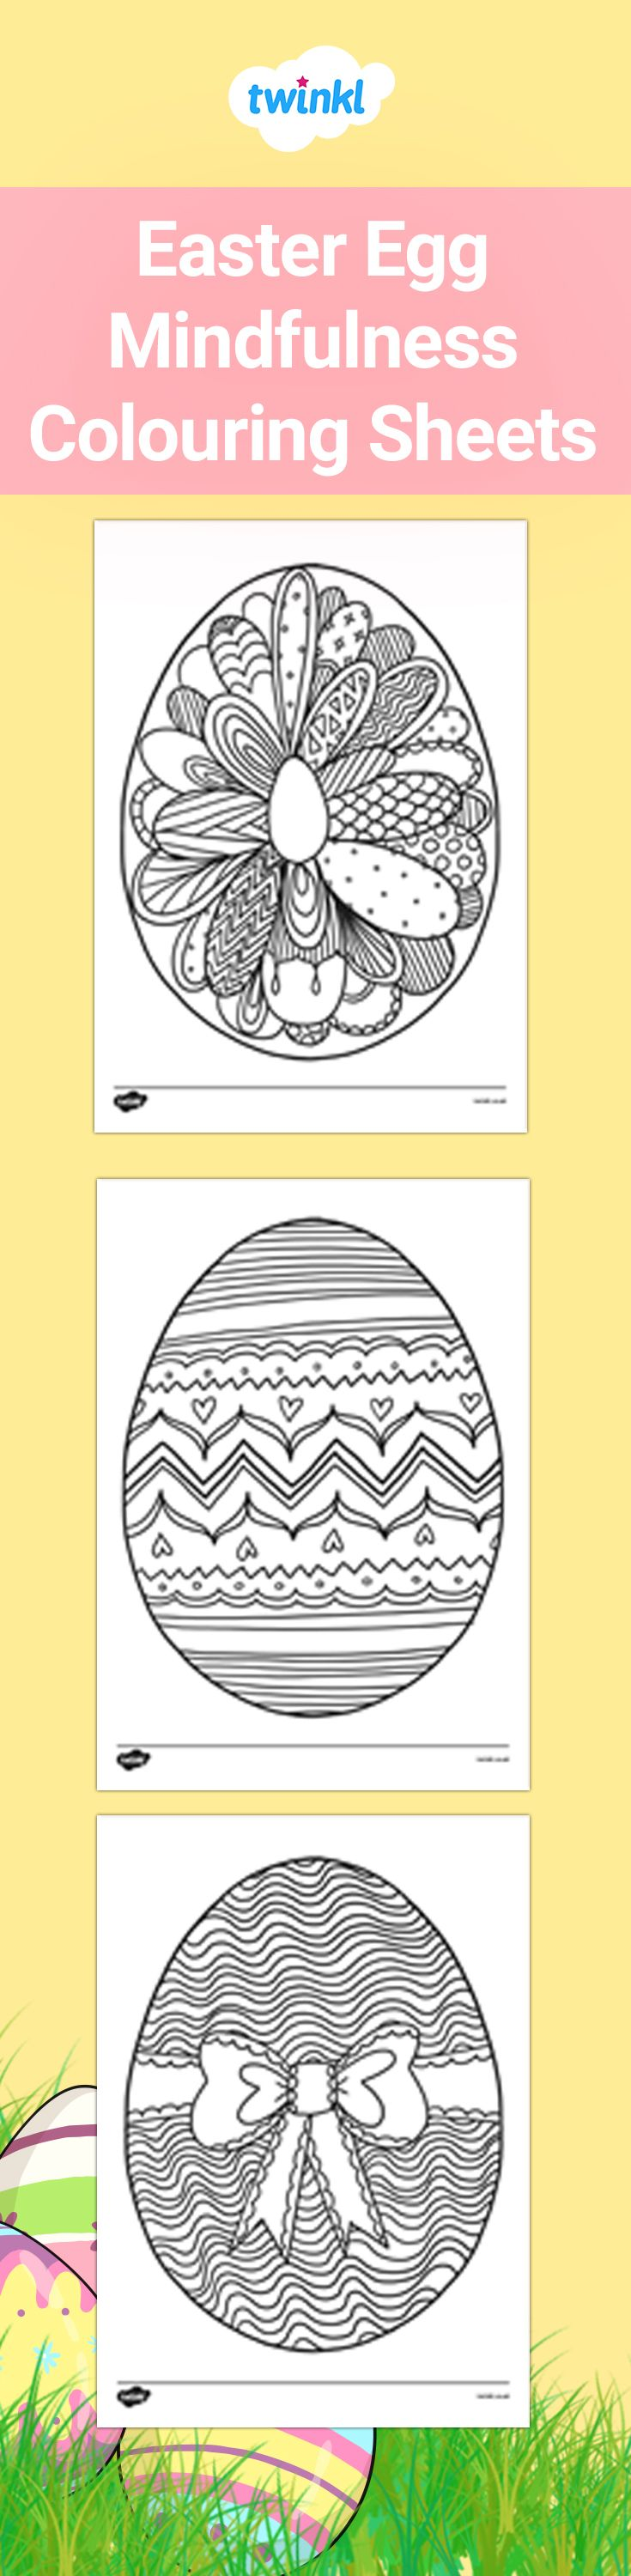 Easter Egg Mindfulness Colouring Sheets Mindfulness Colouring Mindfulness Colouring Sheets Easter Coloring Sheets